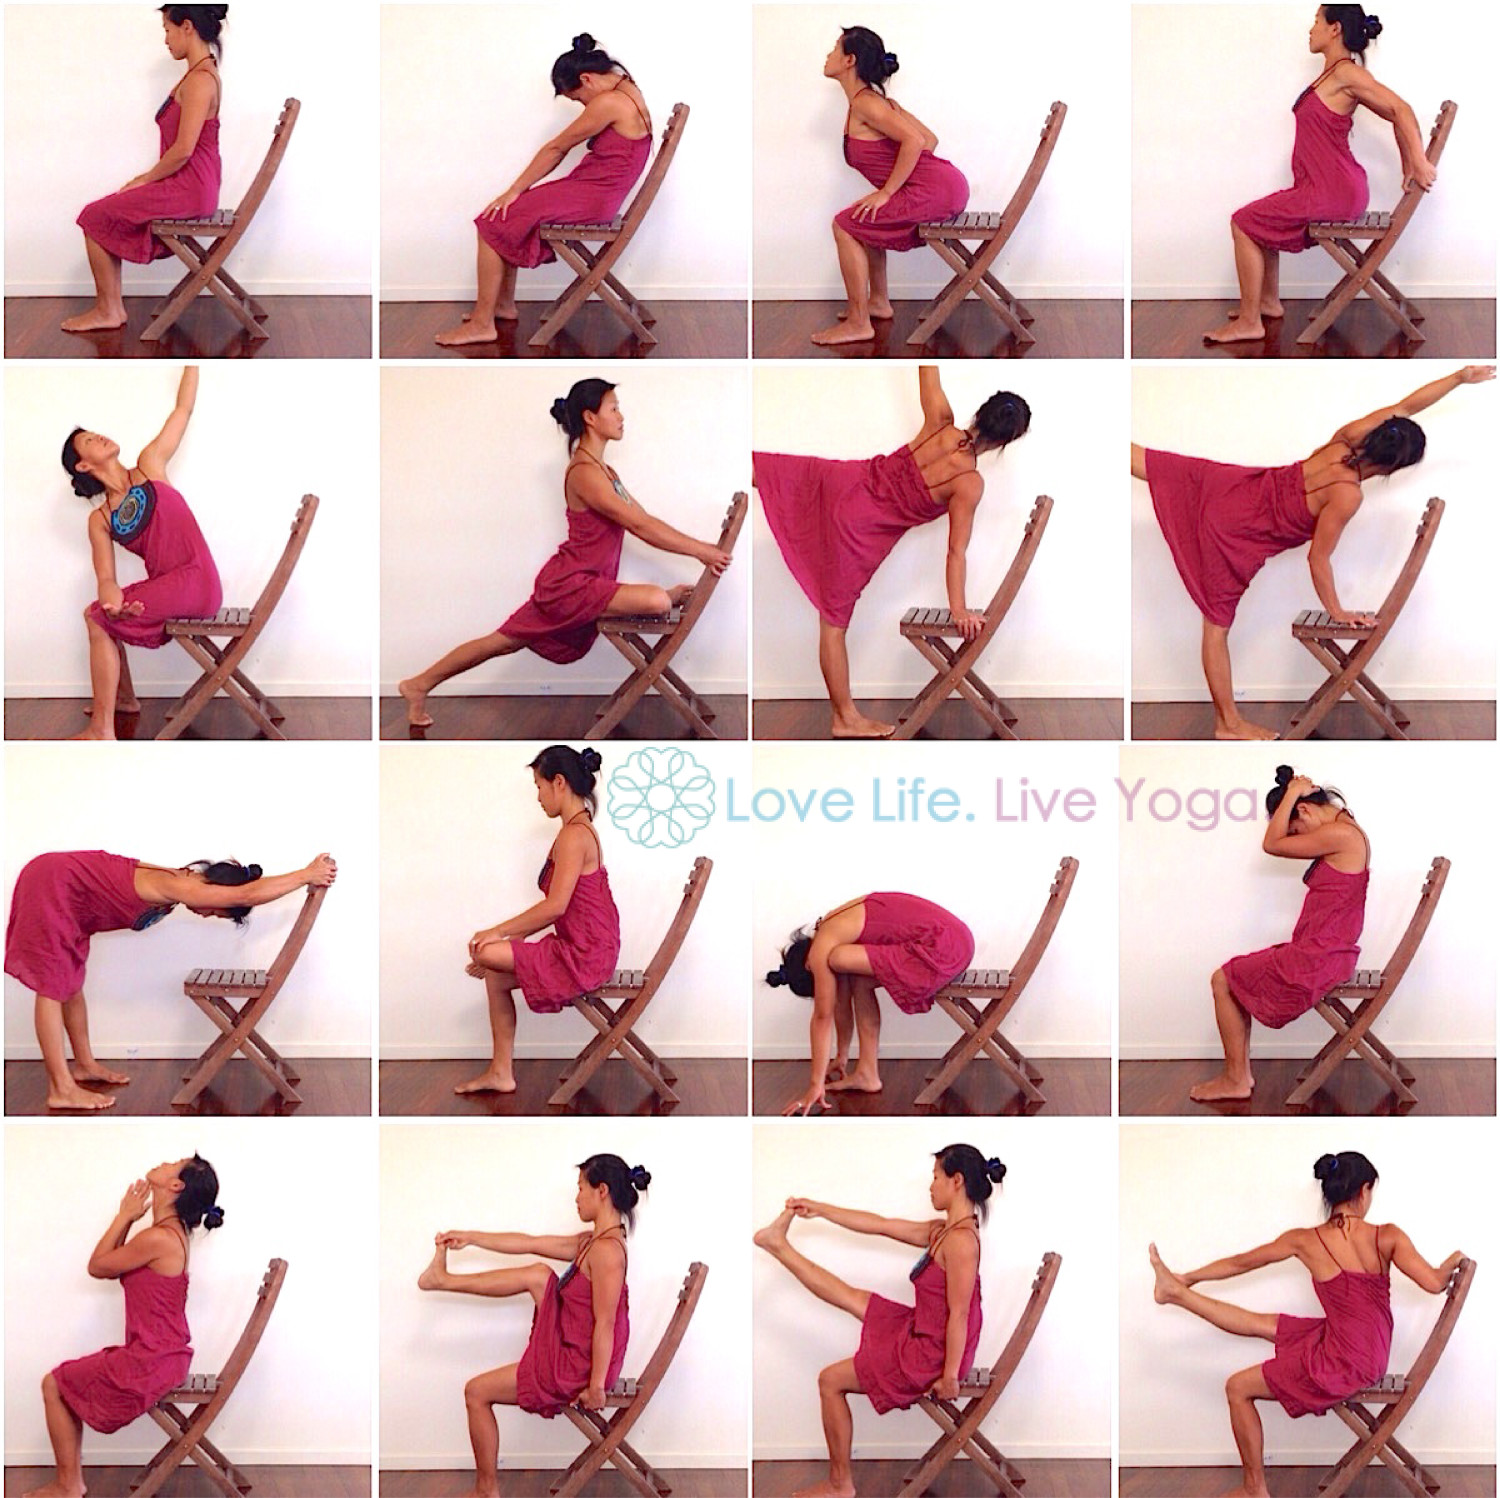 YOGA PRACTICE 15 mins Chair Yoga with Carmen Lee Schneider Love